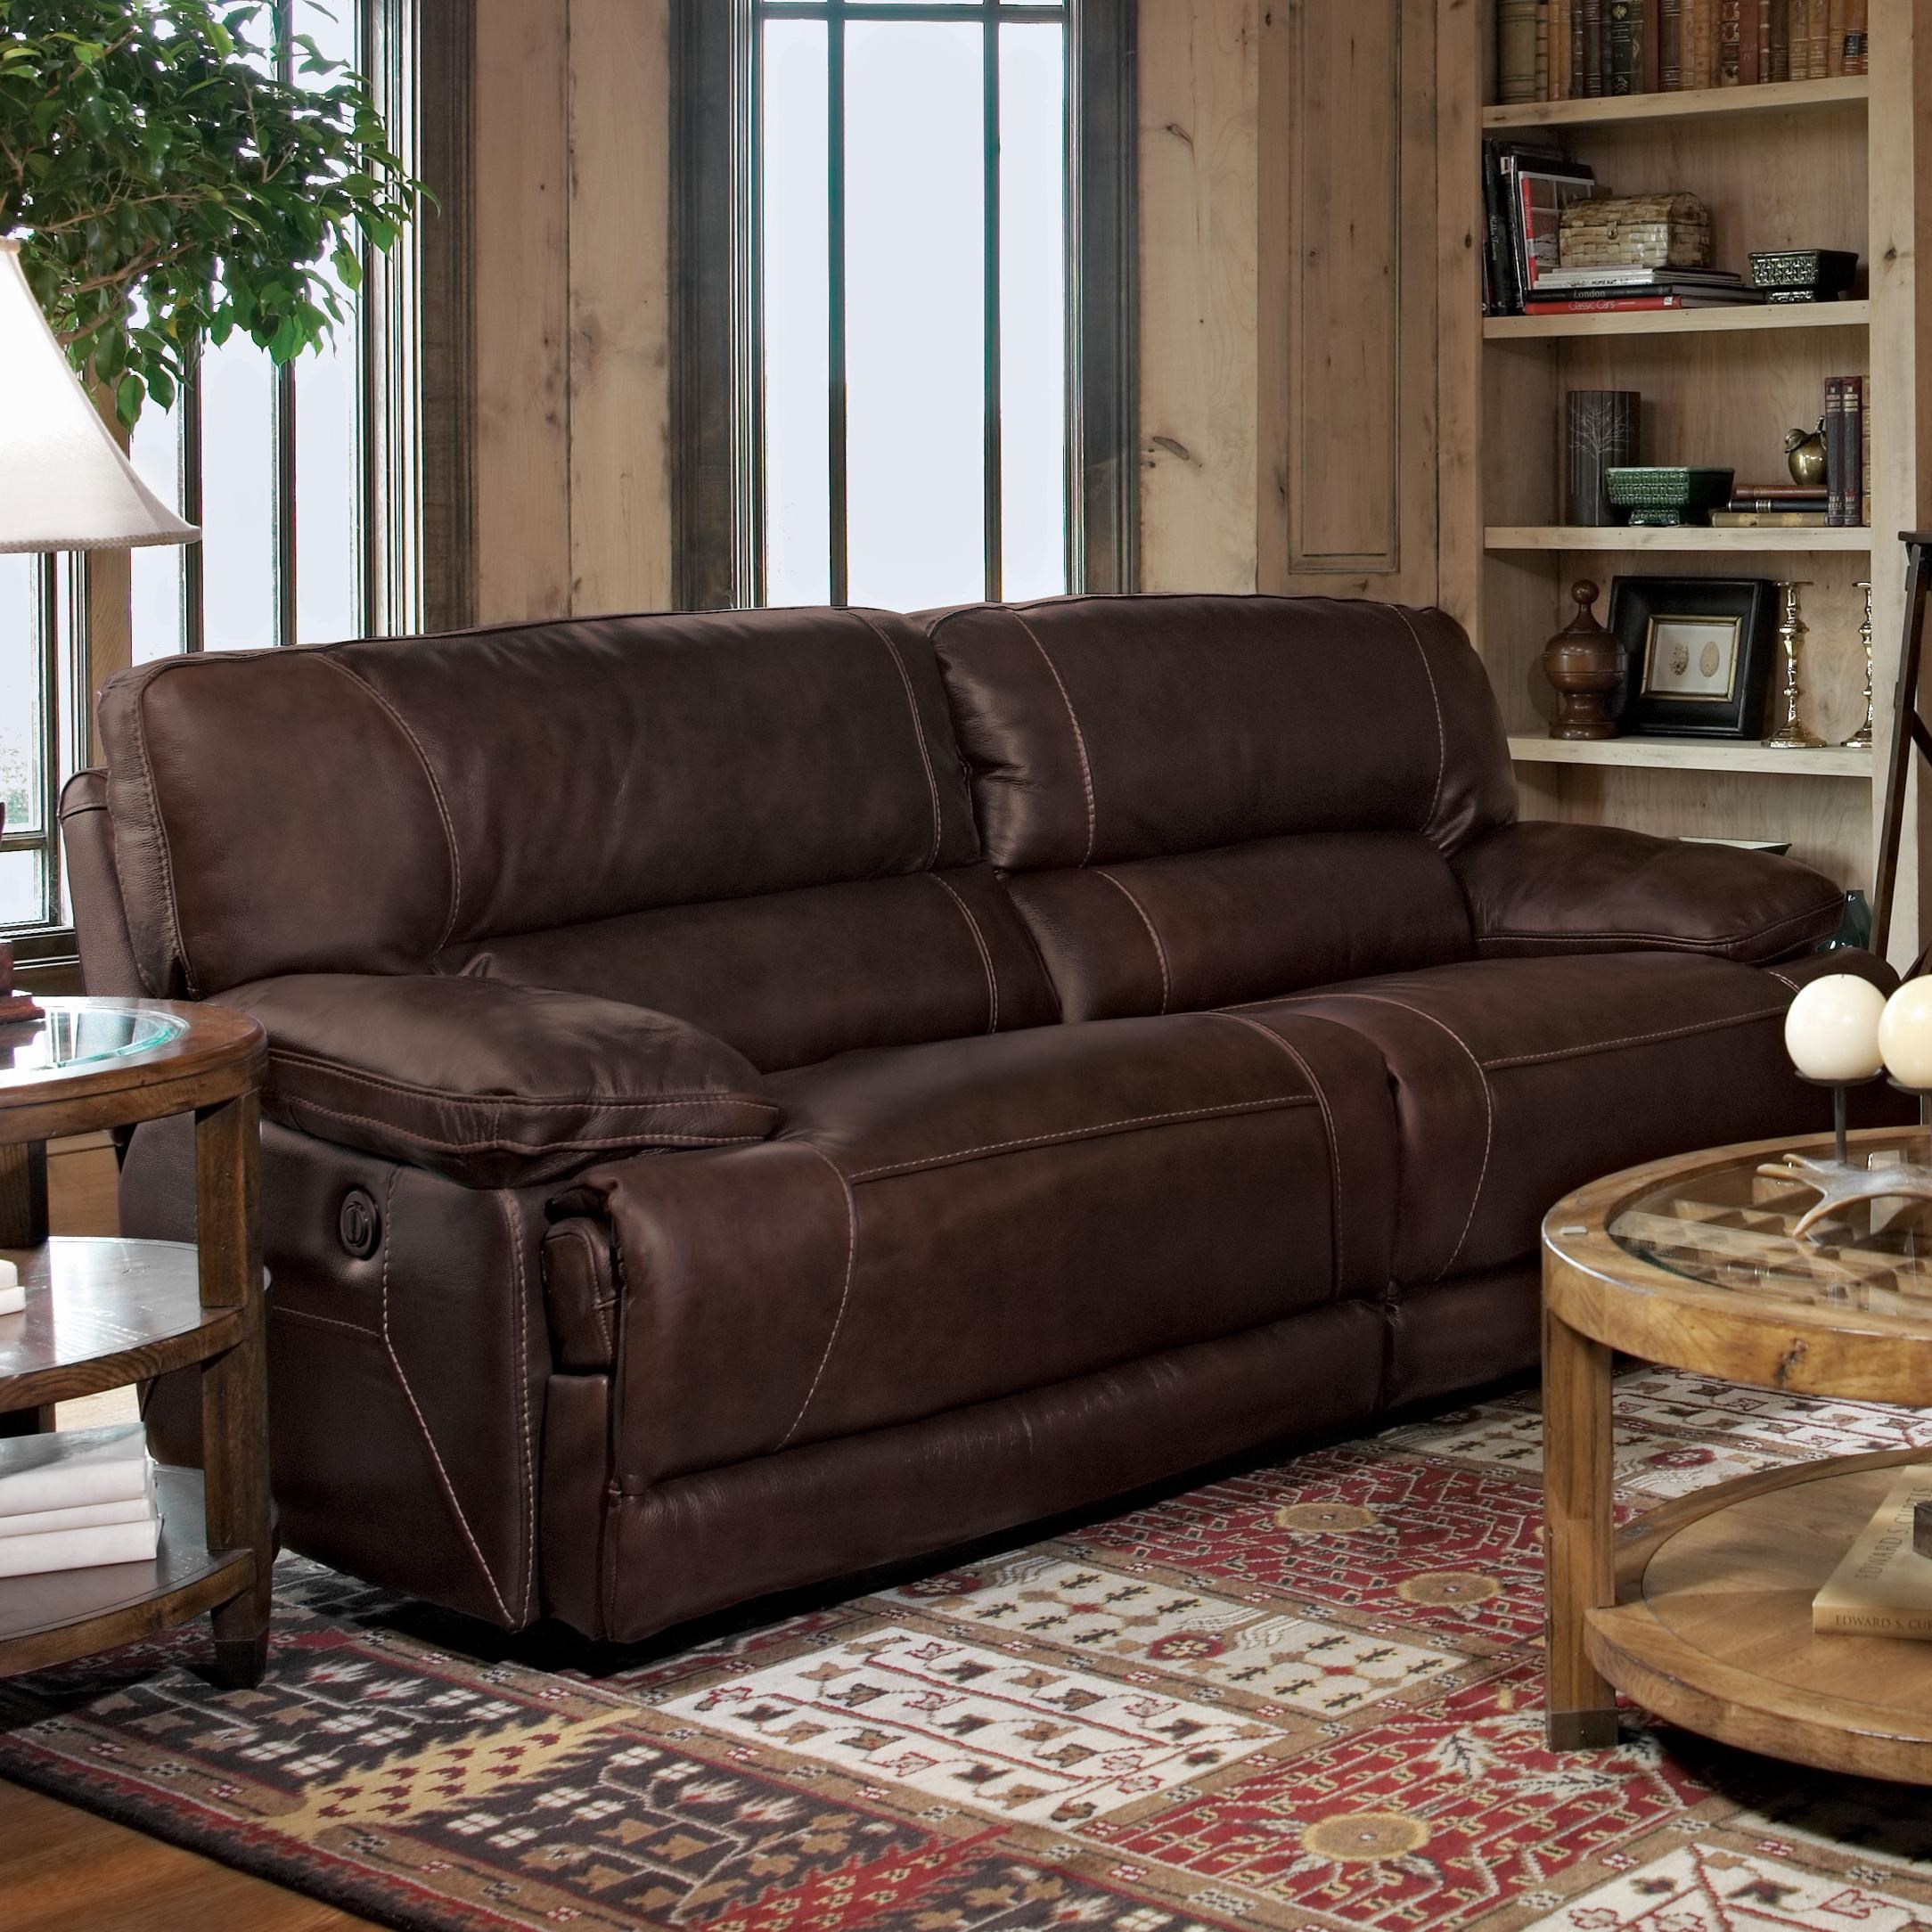 Flexsteel Fleet Street Double Power Reclining Sofa - Wayside